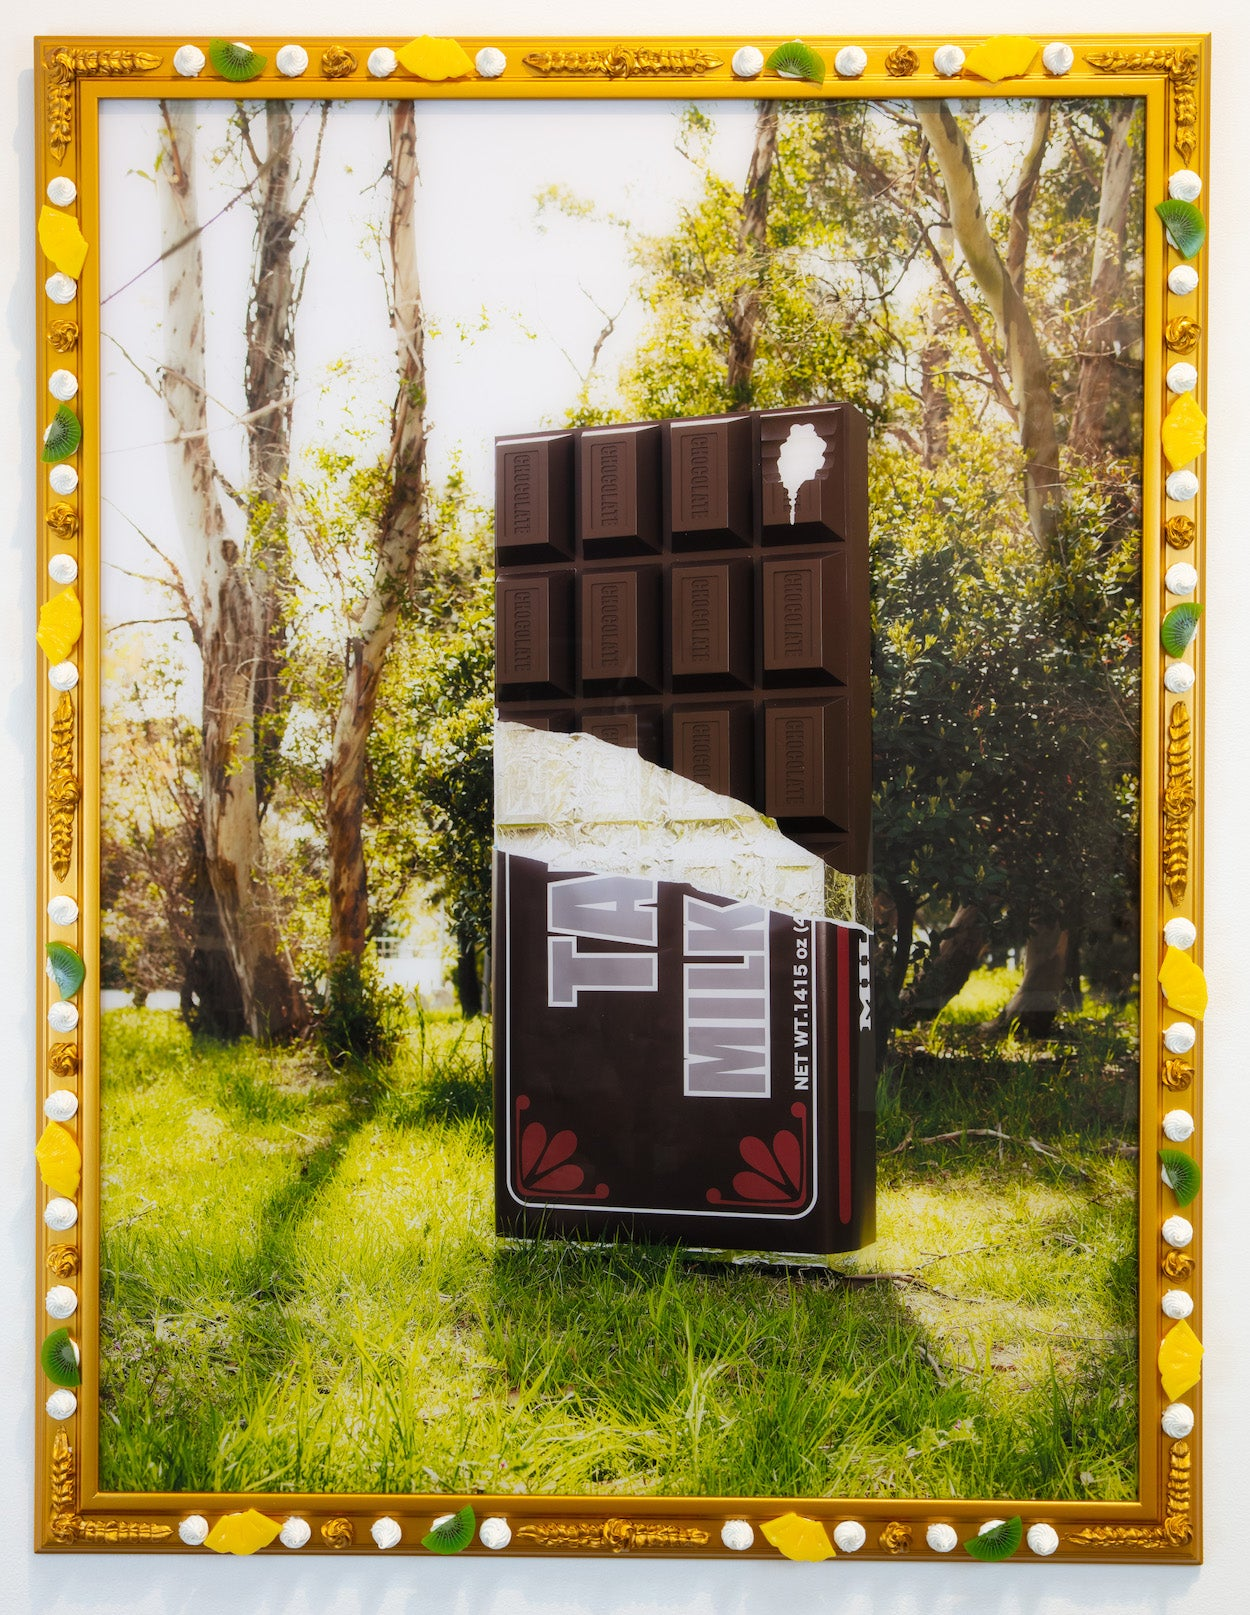 Appeared (Chocolate Monolith)